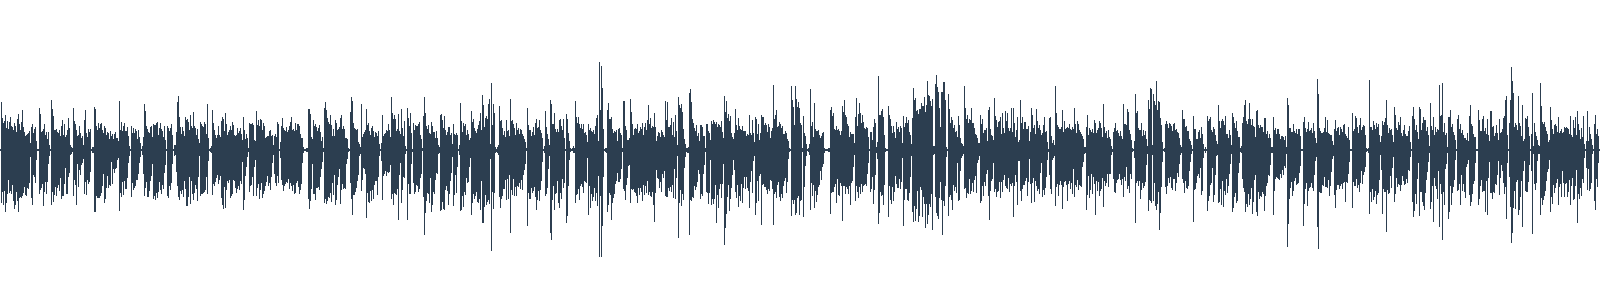 Šedé ruže waveform